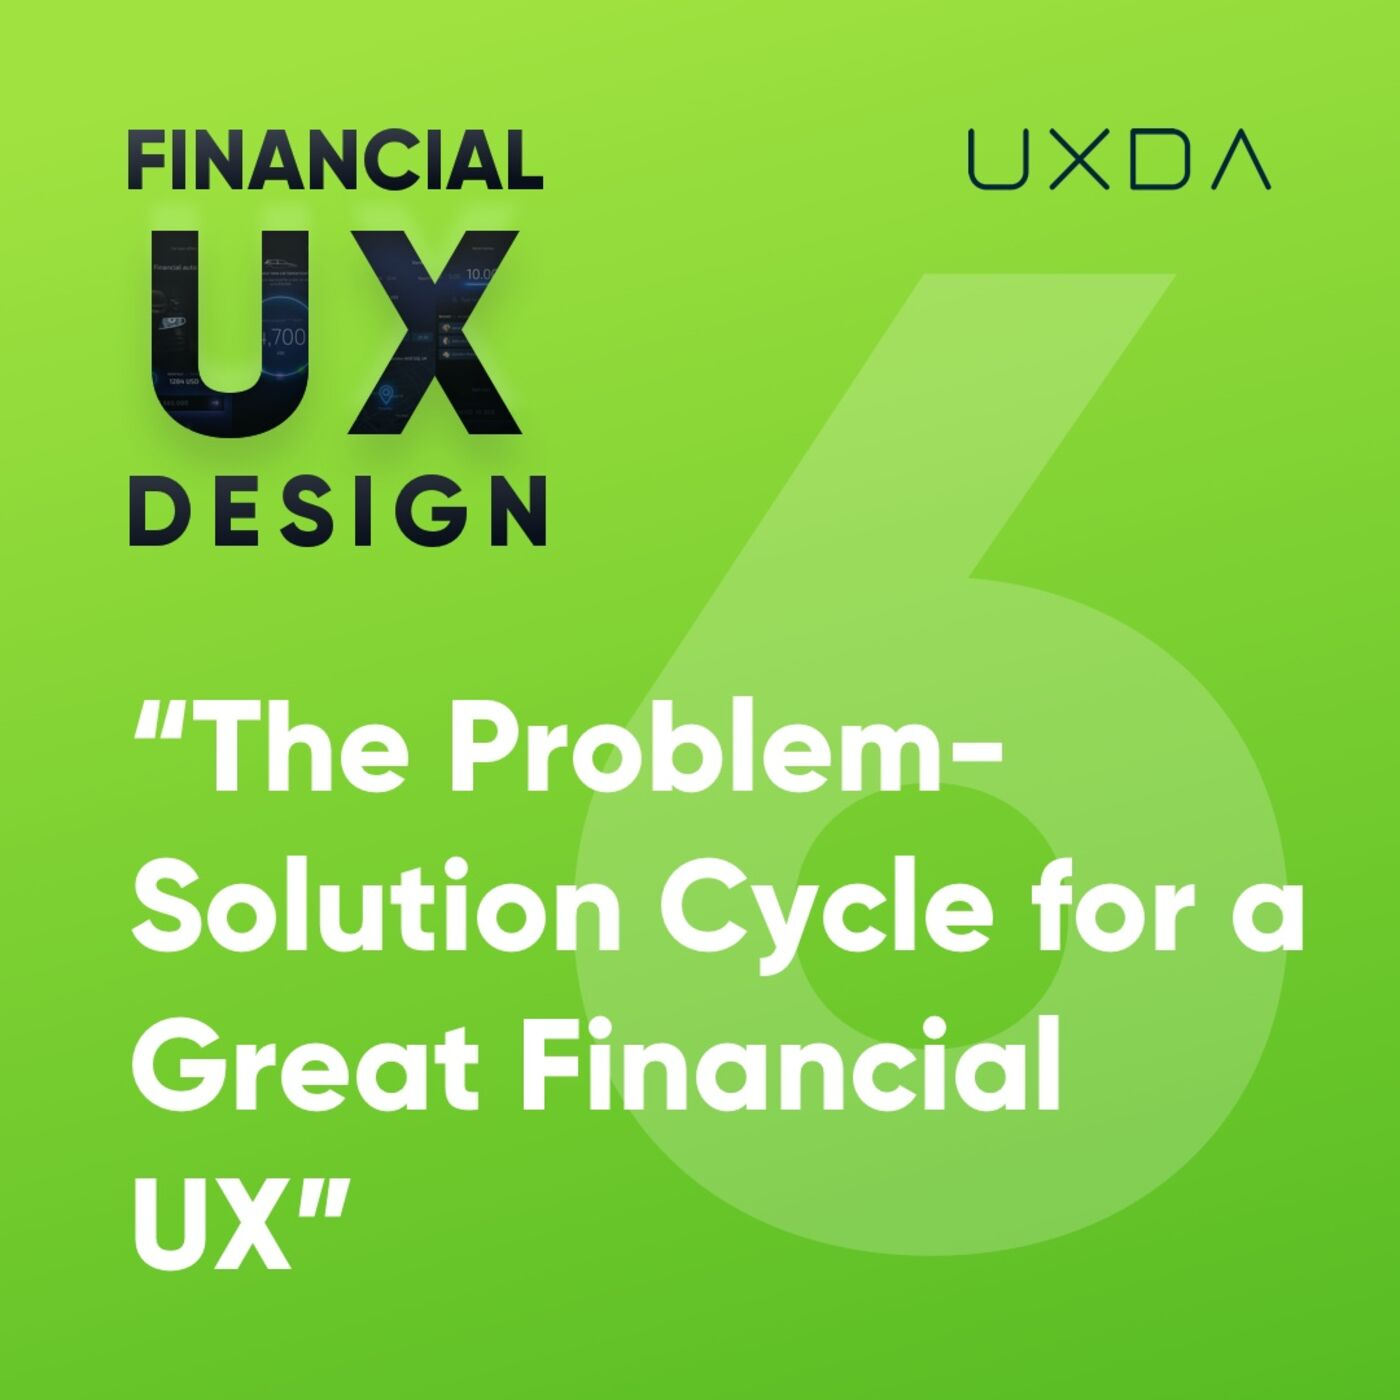 #6 The Problem-Solution Cycle for Creating a Great Financial UX